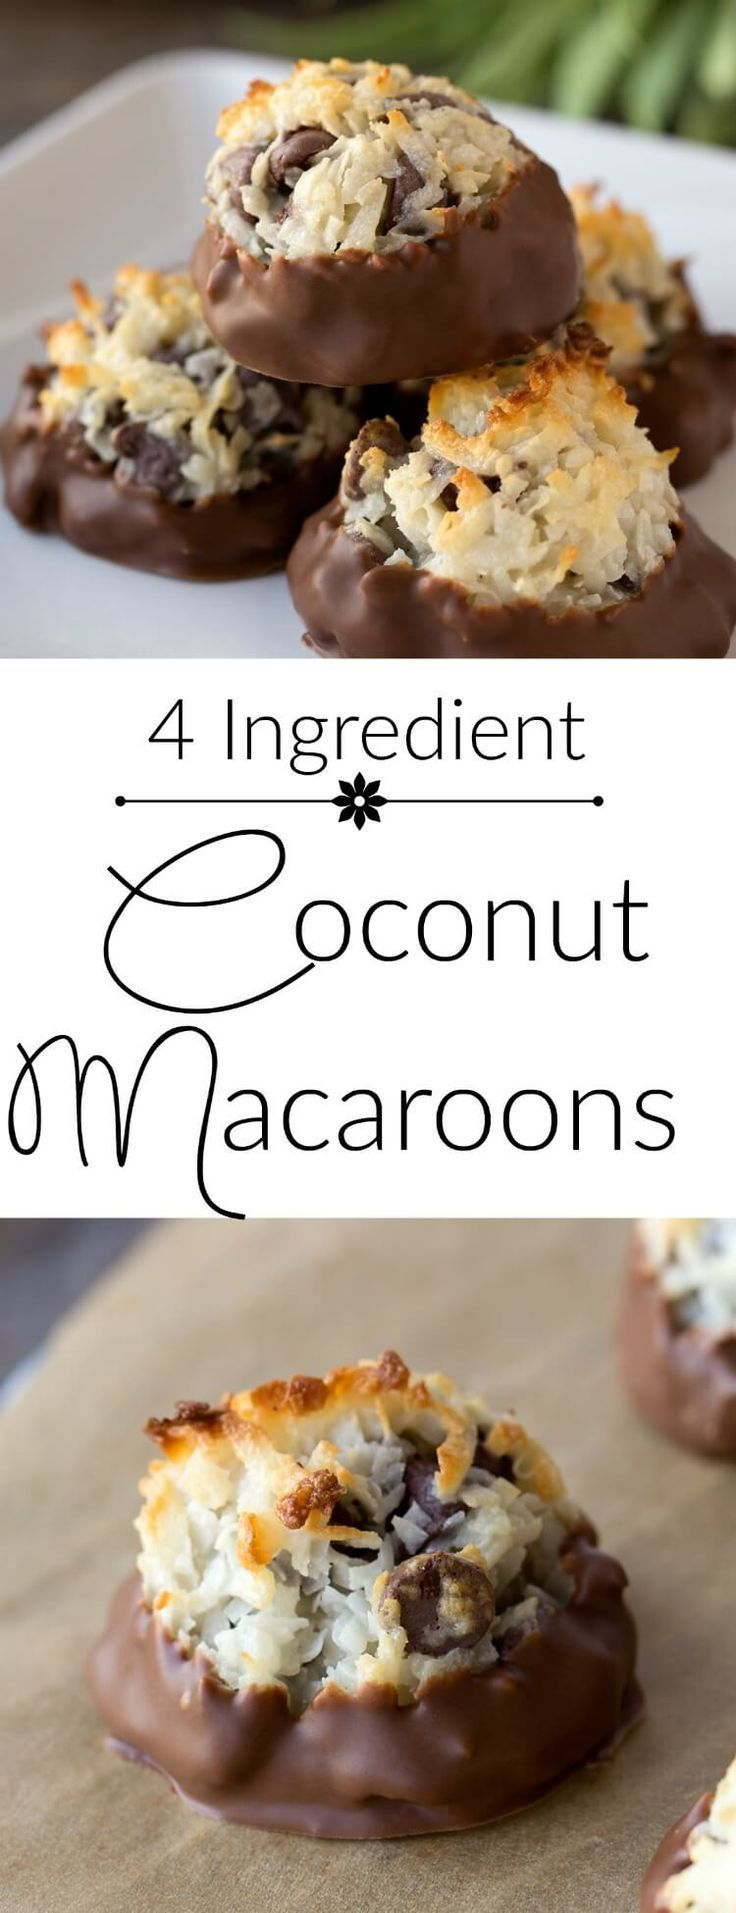 Coconut Macaroons Recipe - only four ingredients and perfect for Passover